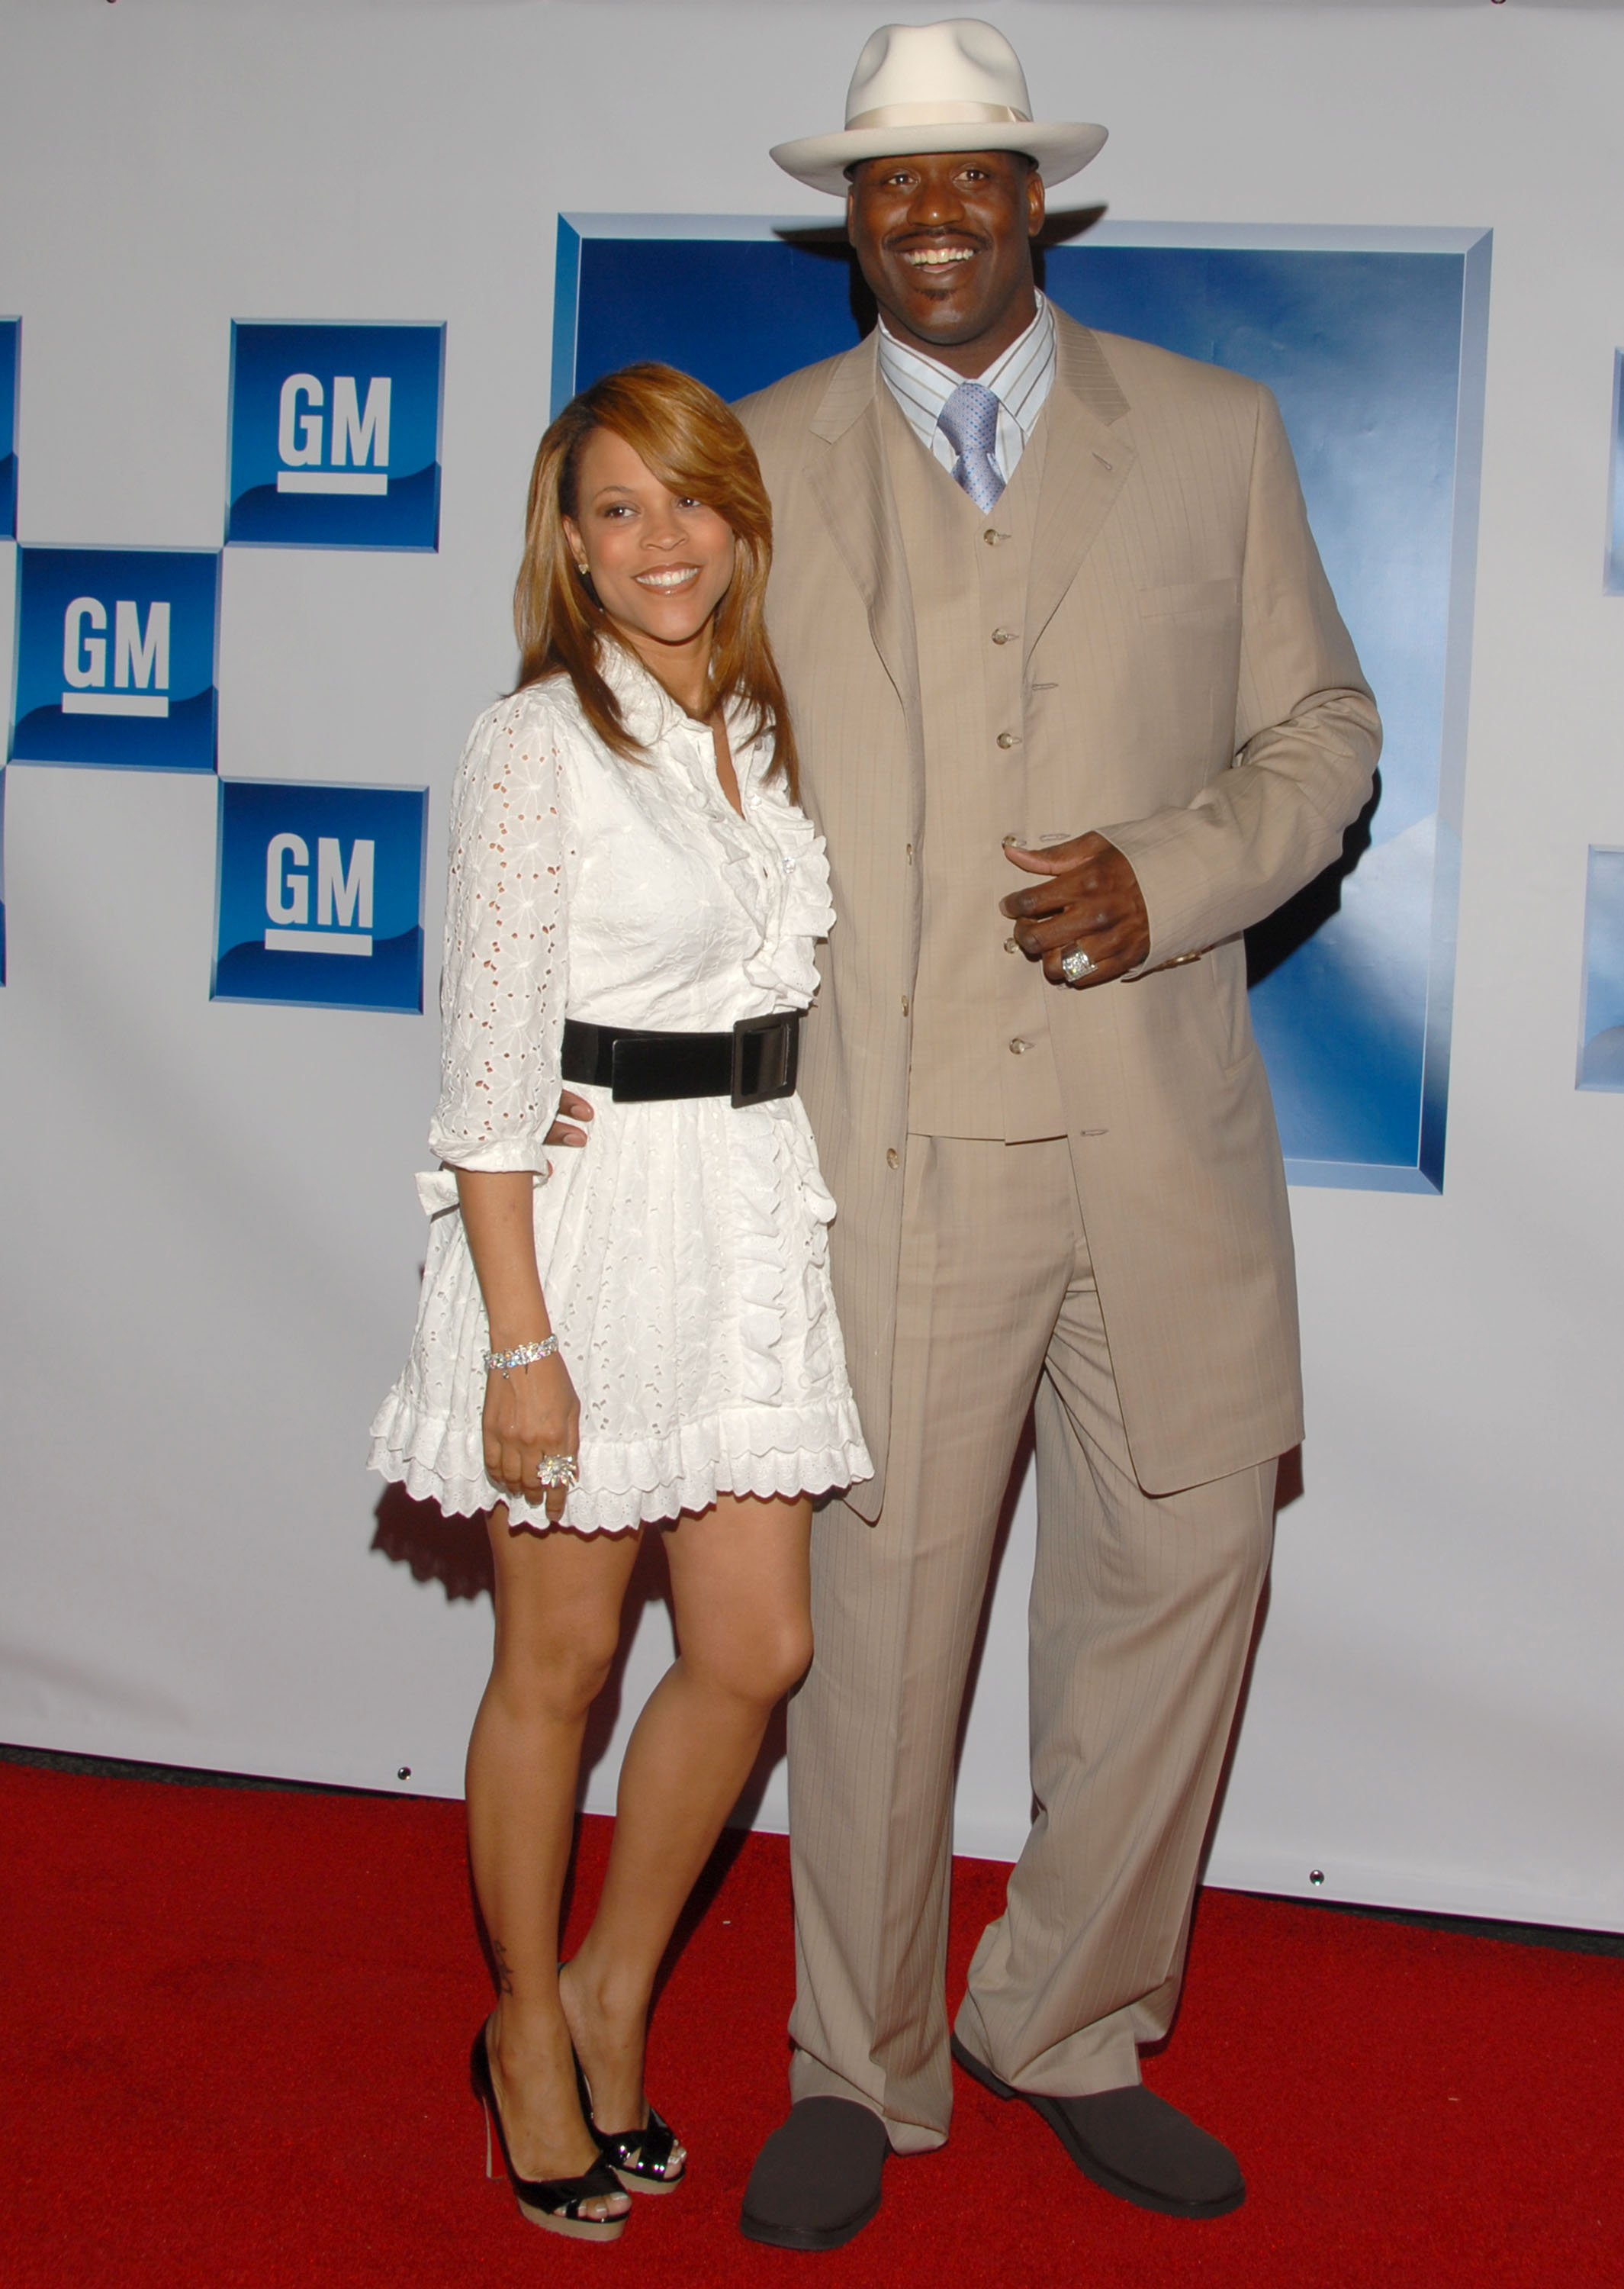 Shaunie and Shaquille O'Neal attend the General Motors All-Car Showdown event in Hollywood, California in July 2006 | Photo: Getty Images